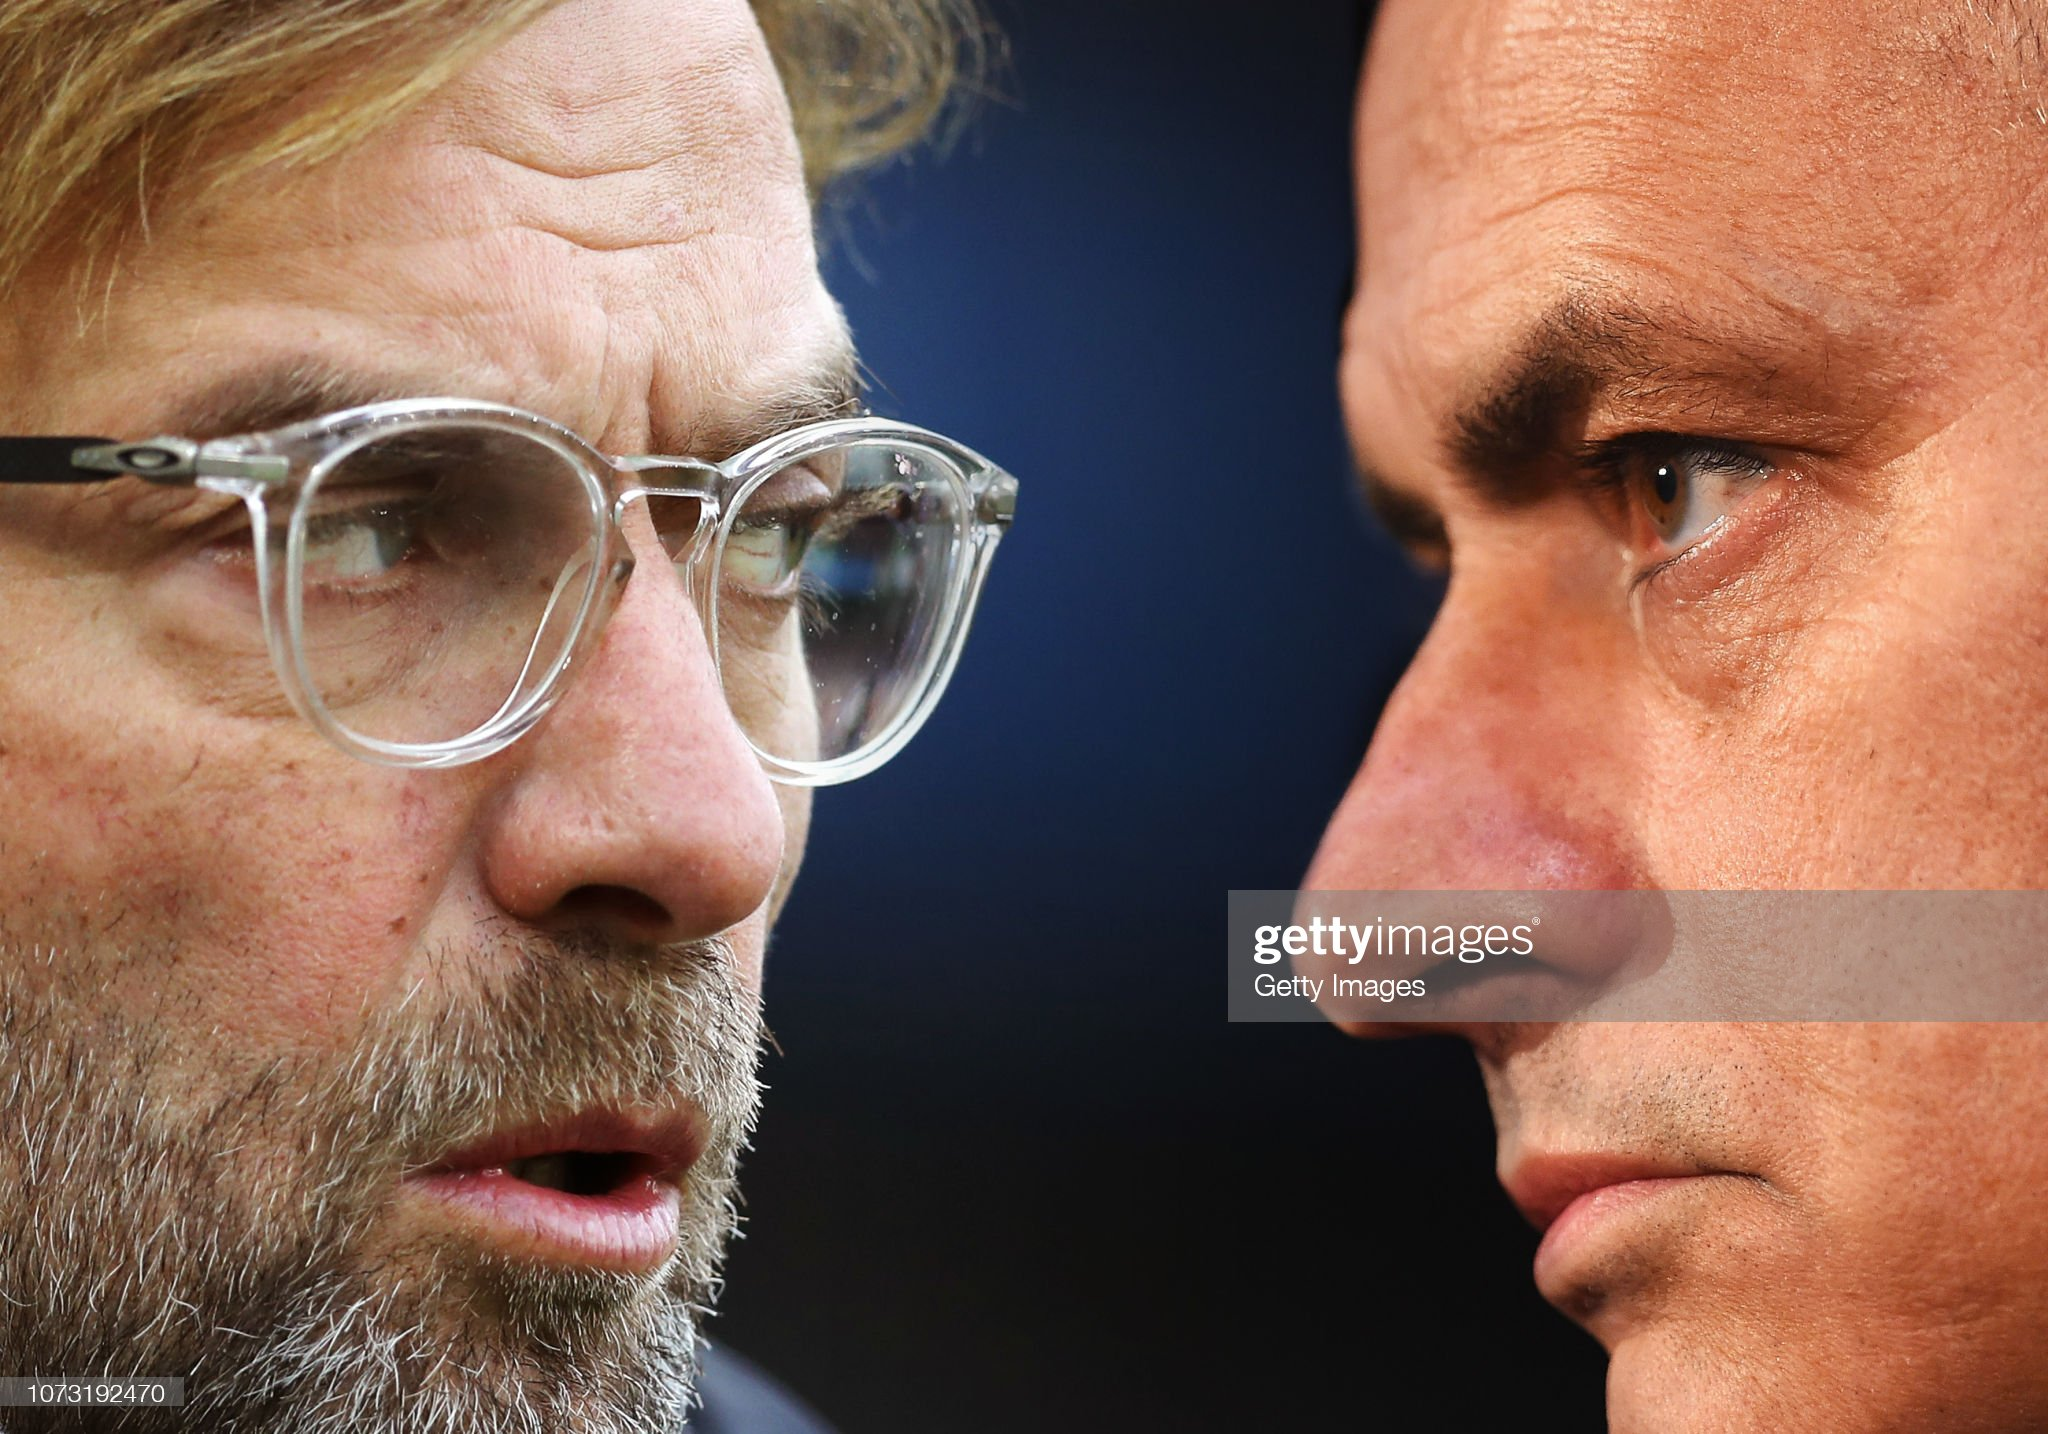 Liverpool vs Tottenham preview, prediction and odds